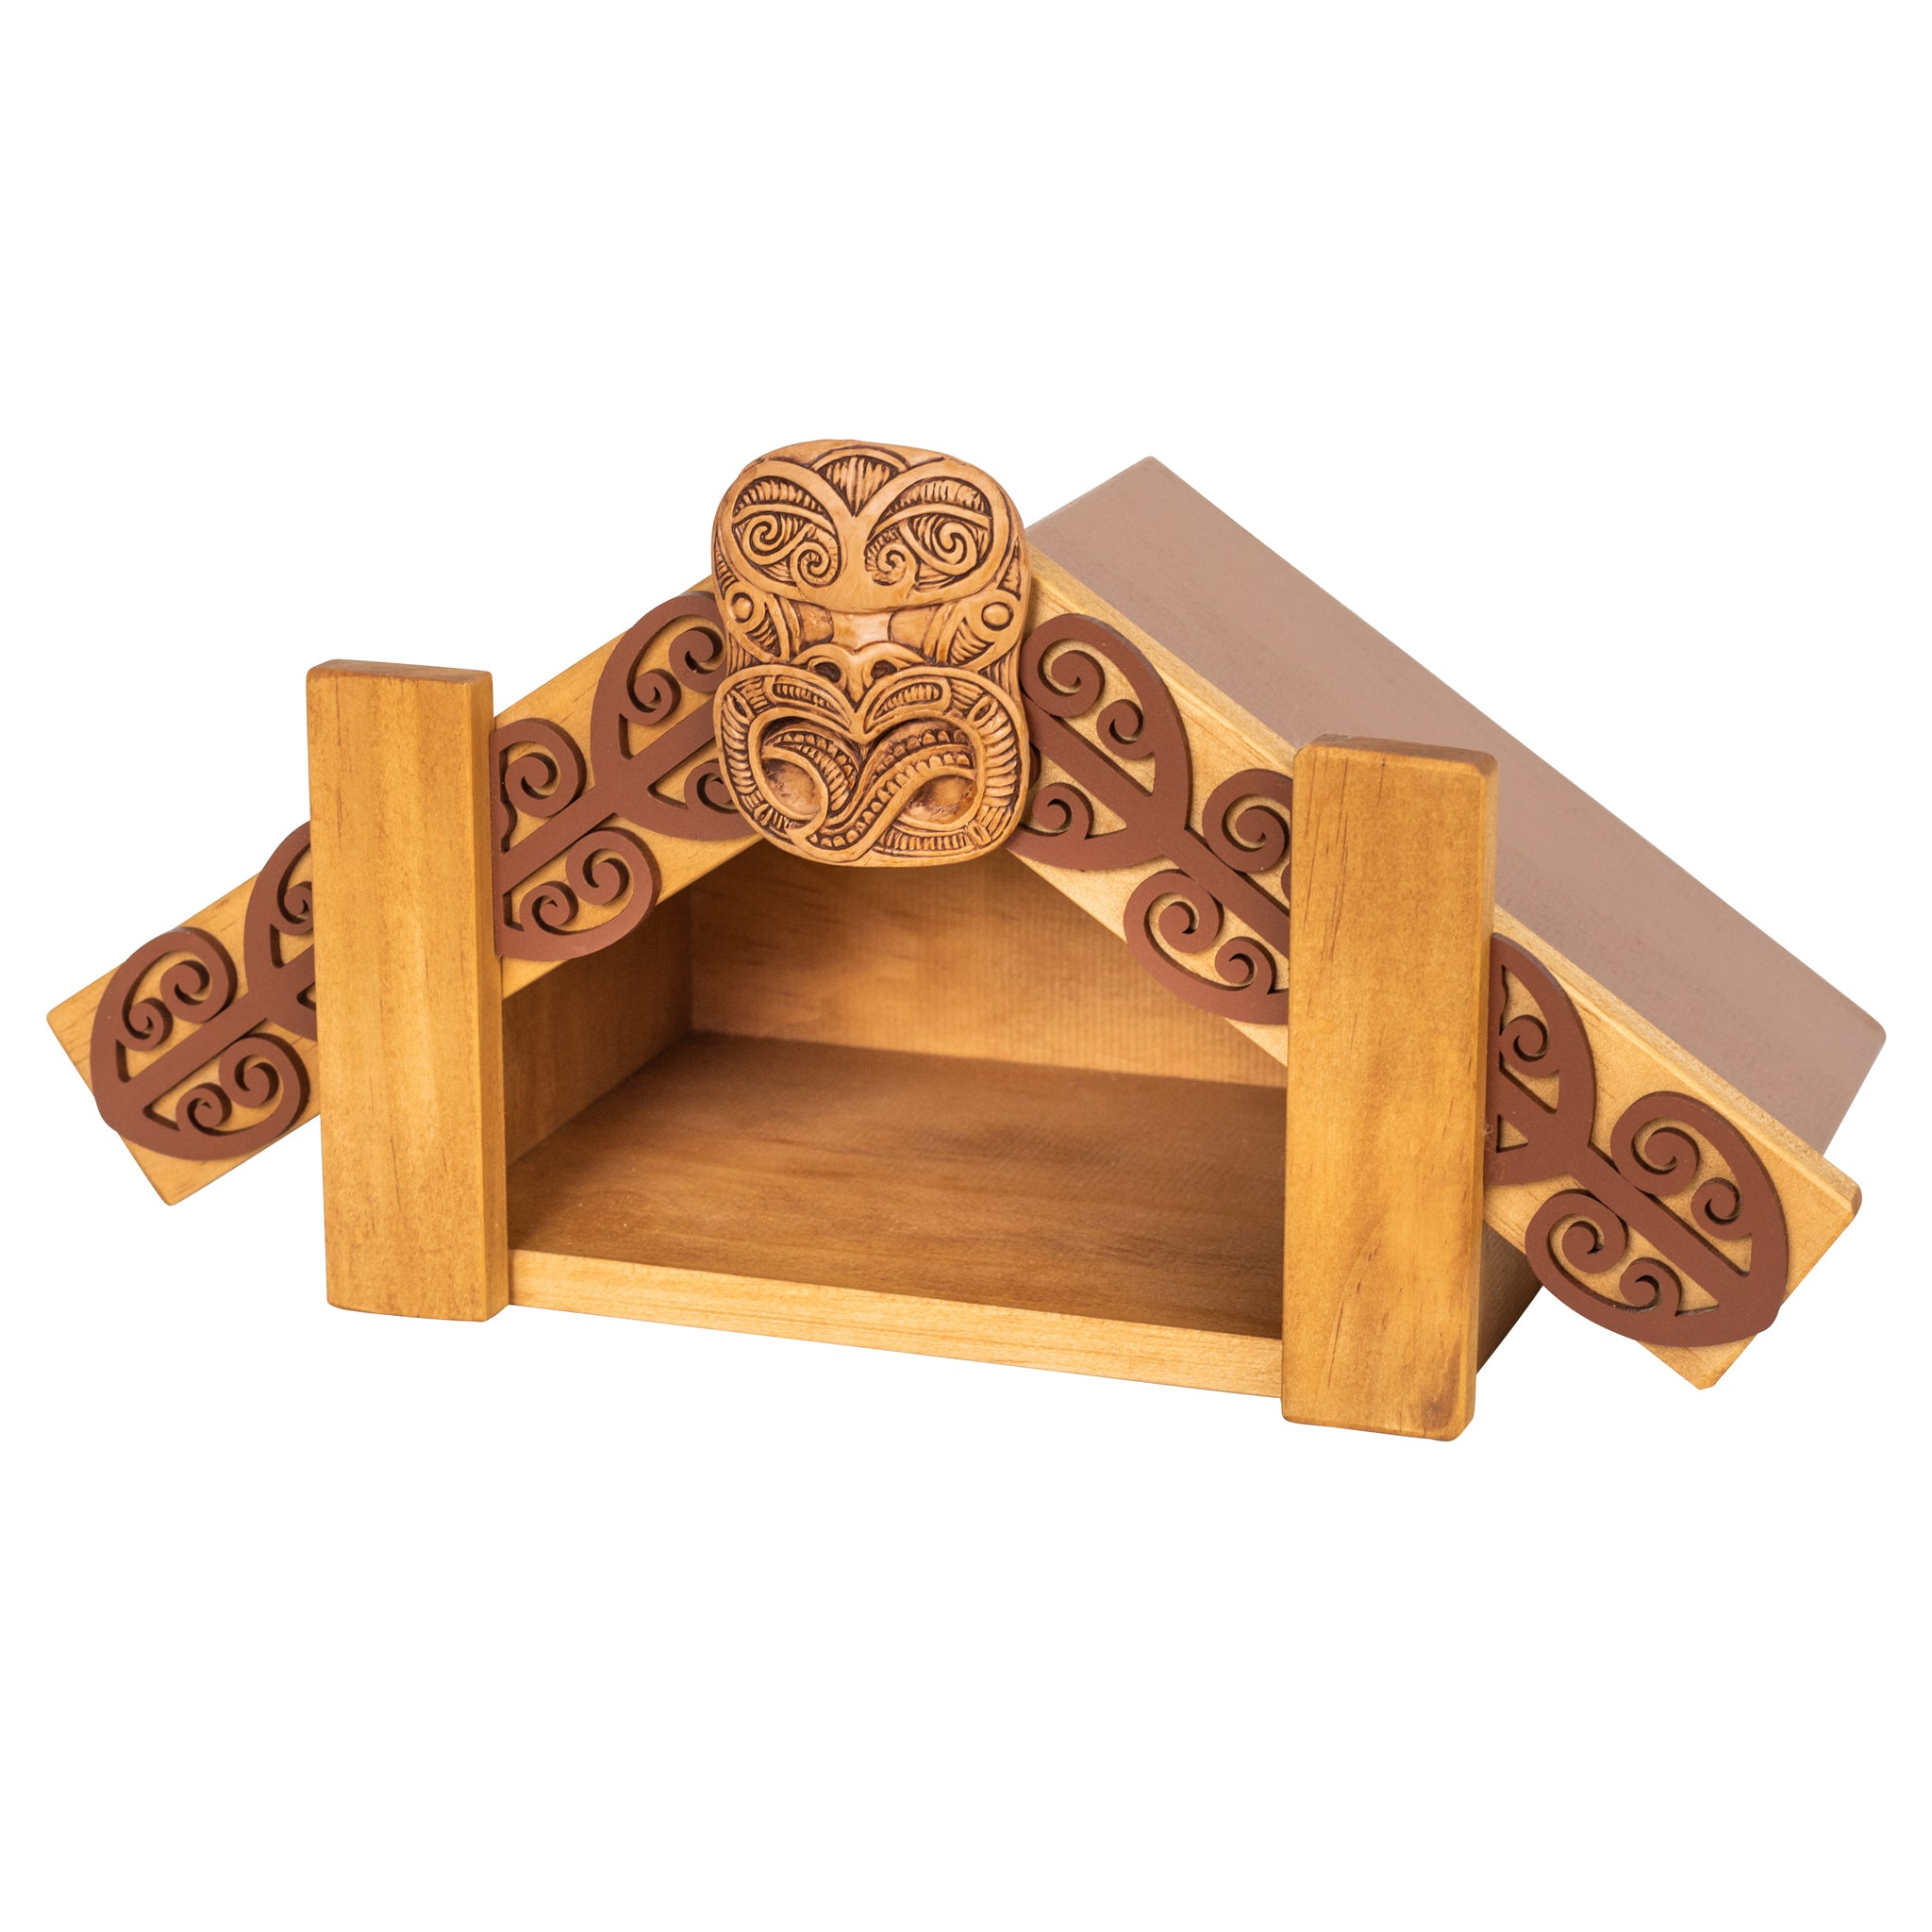 Wooden Whare Image